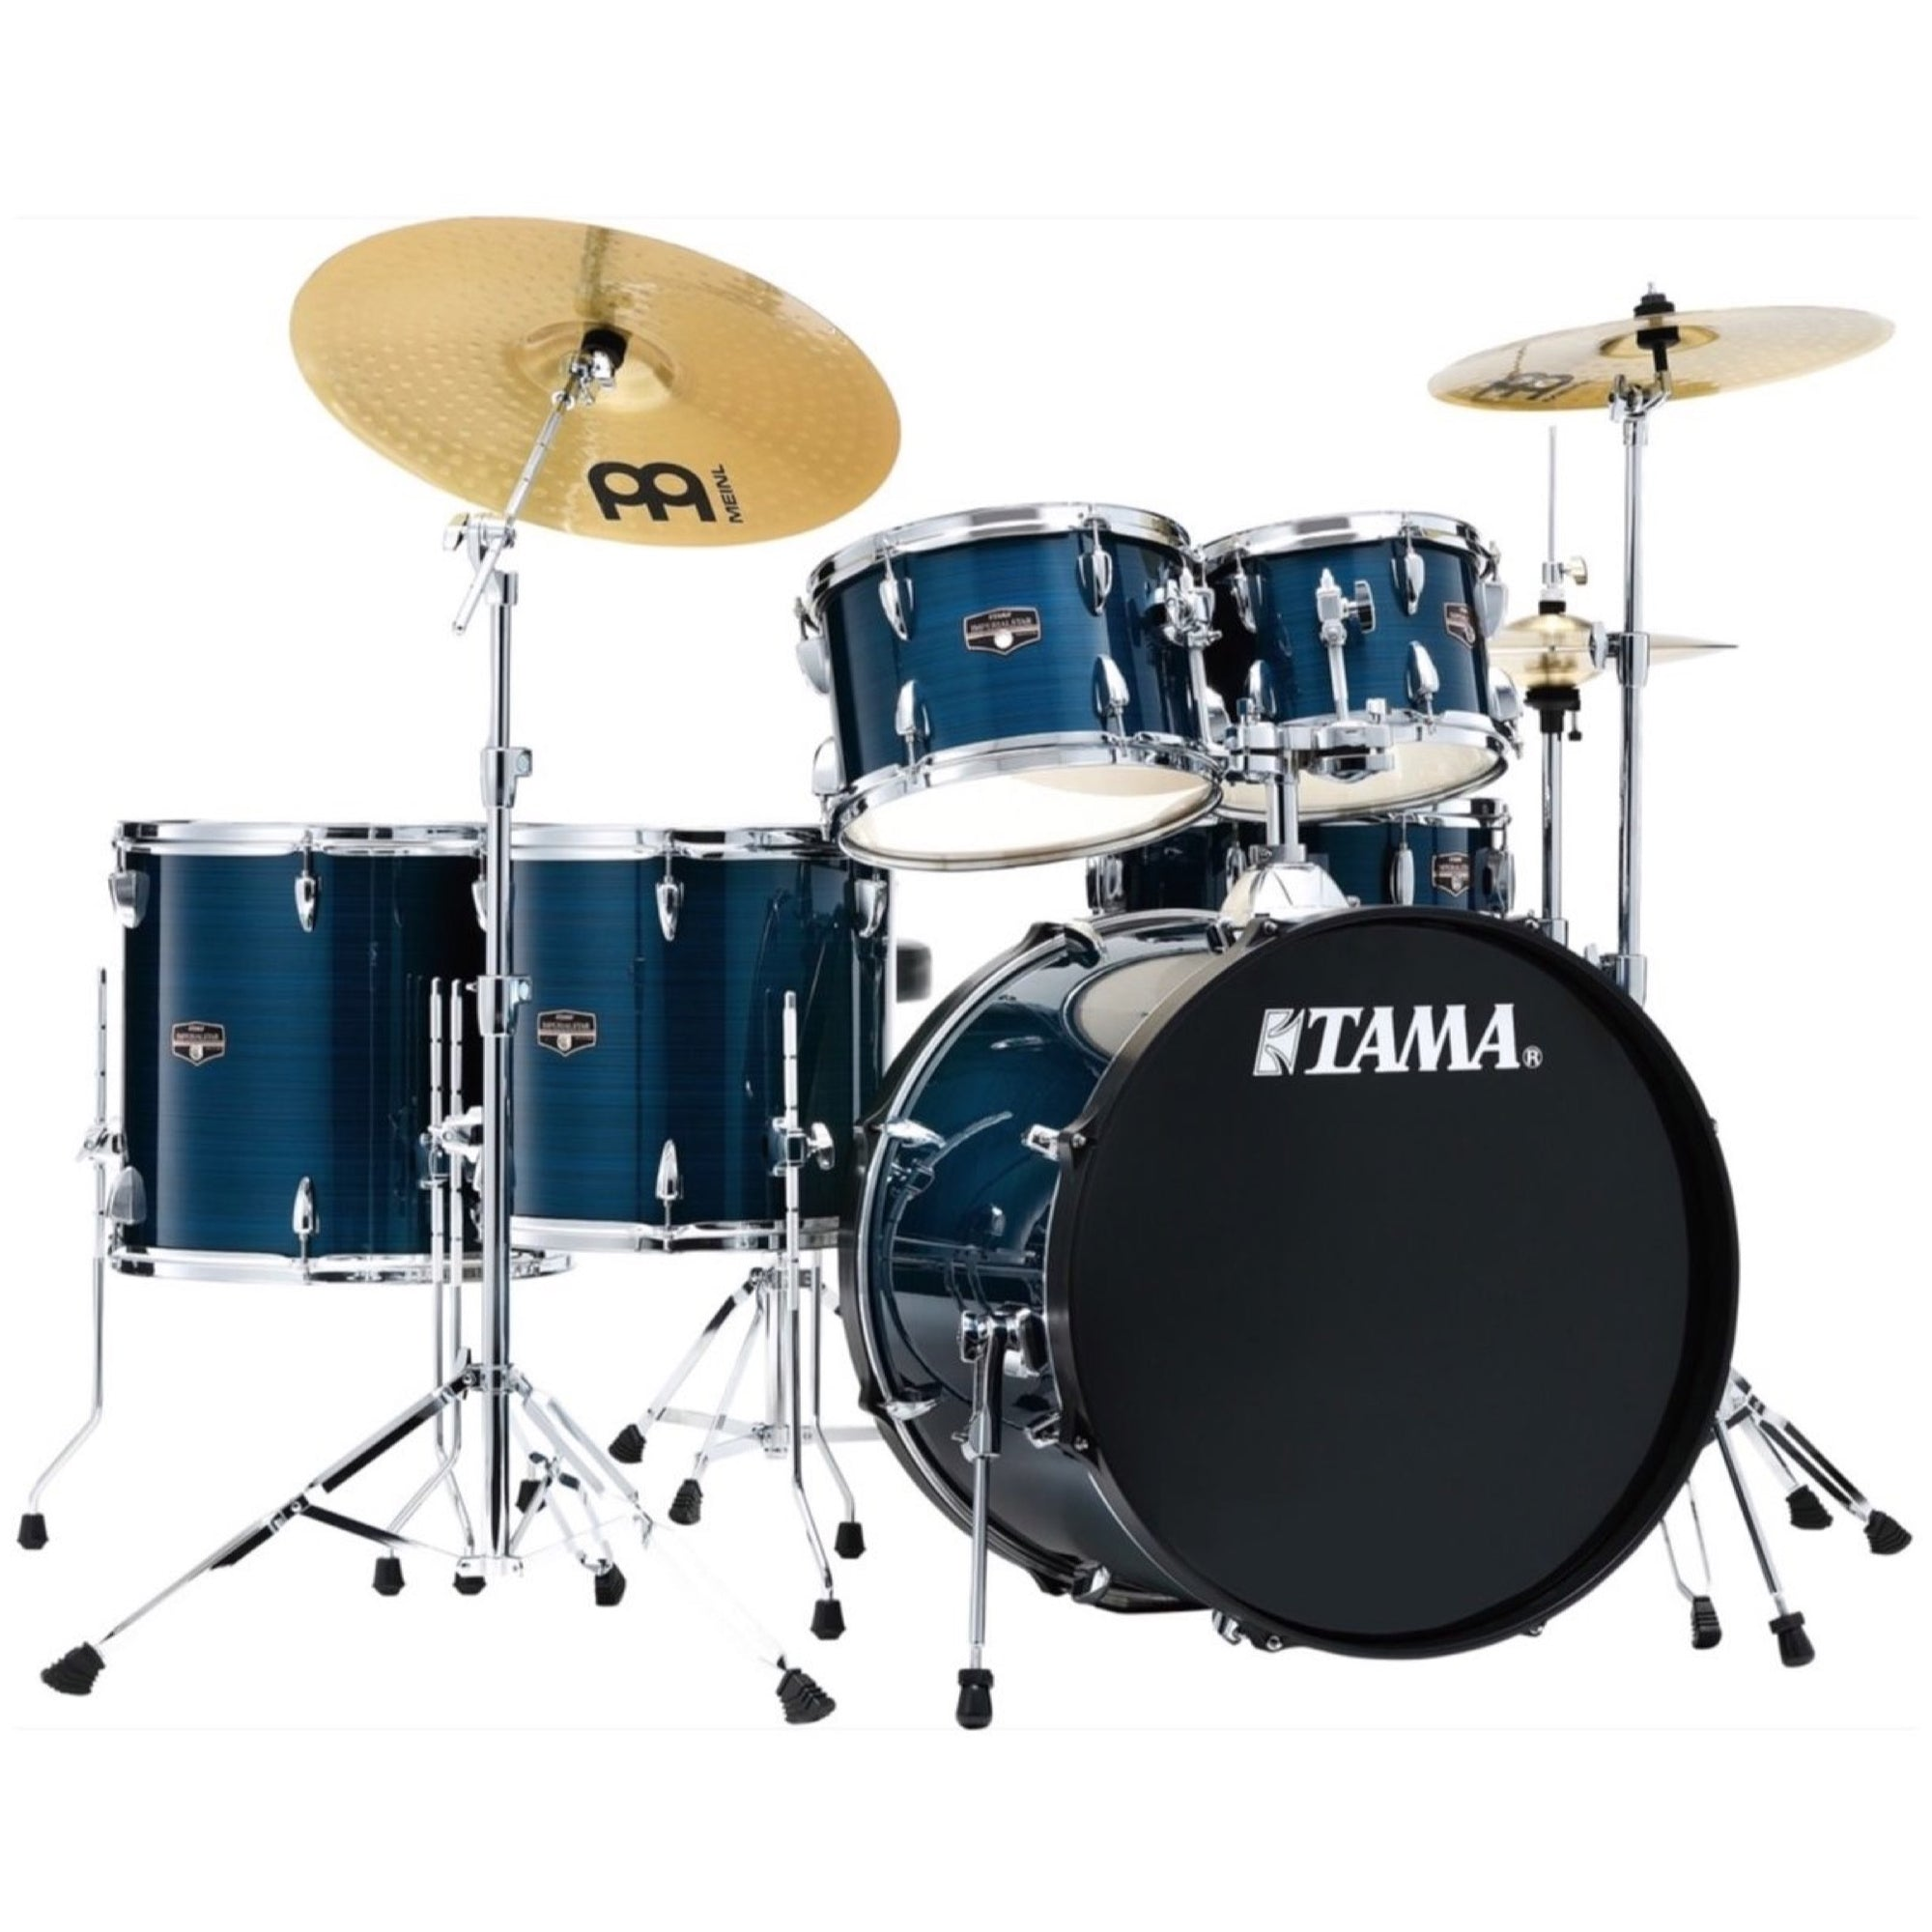 Tama IE62C Imperialstar Drum Kit, 6-Piece (with Meinl Cymbals), Hairline Blue